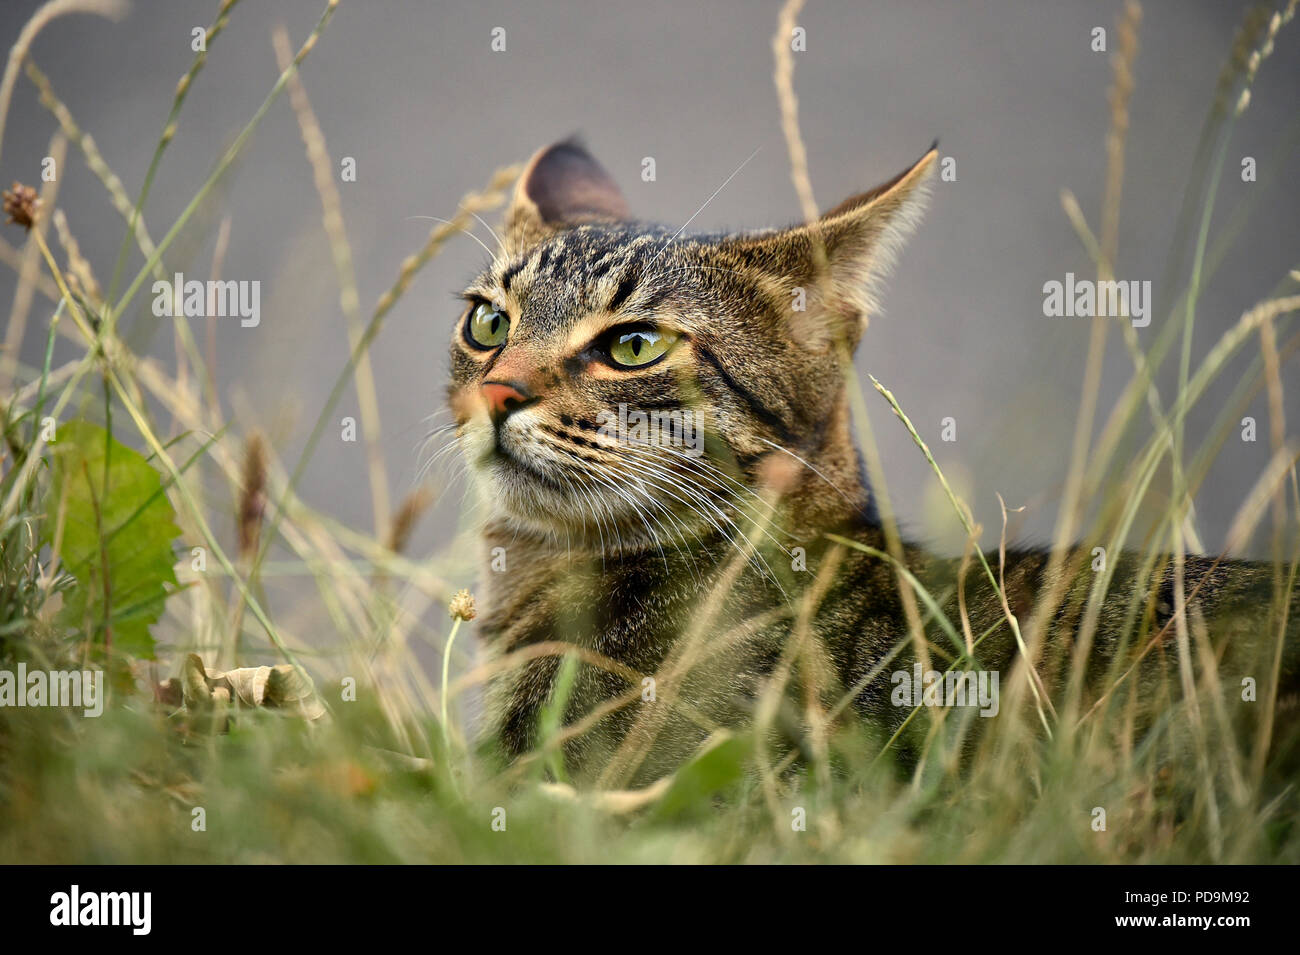 Domestic cat, kitten, 9 months, animal portrait in high grass, Germany - Stock Image